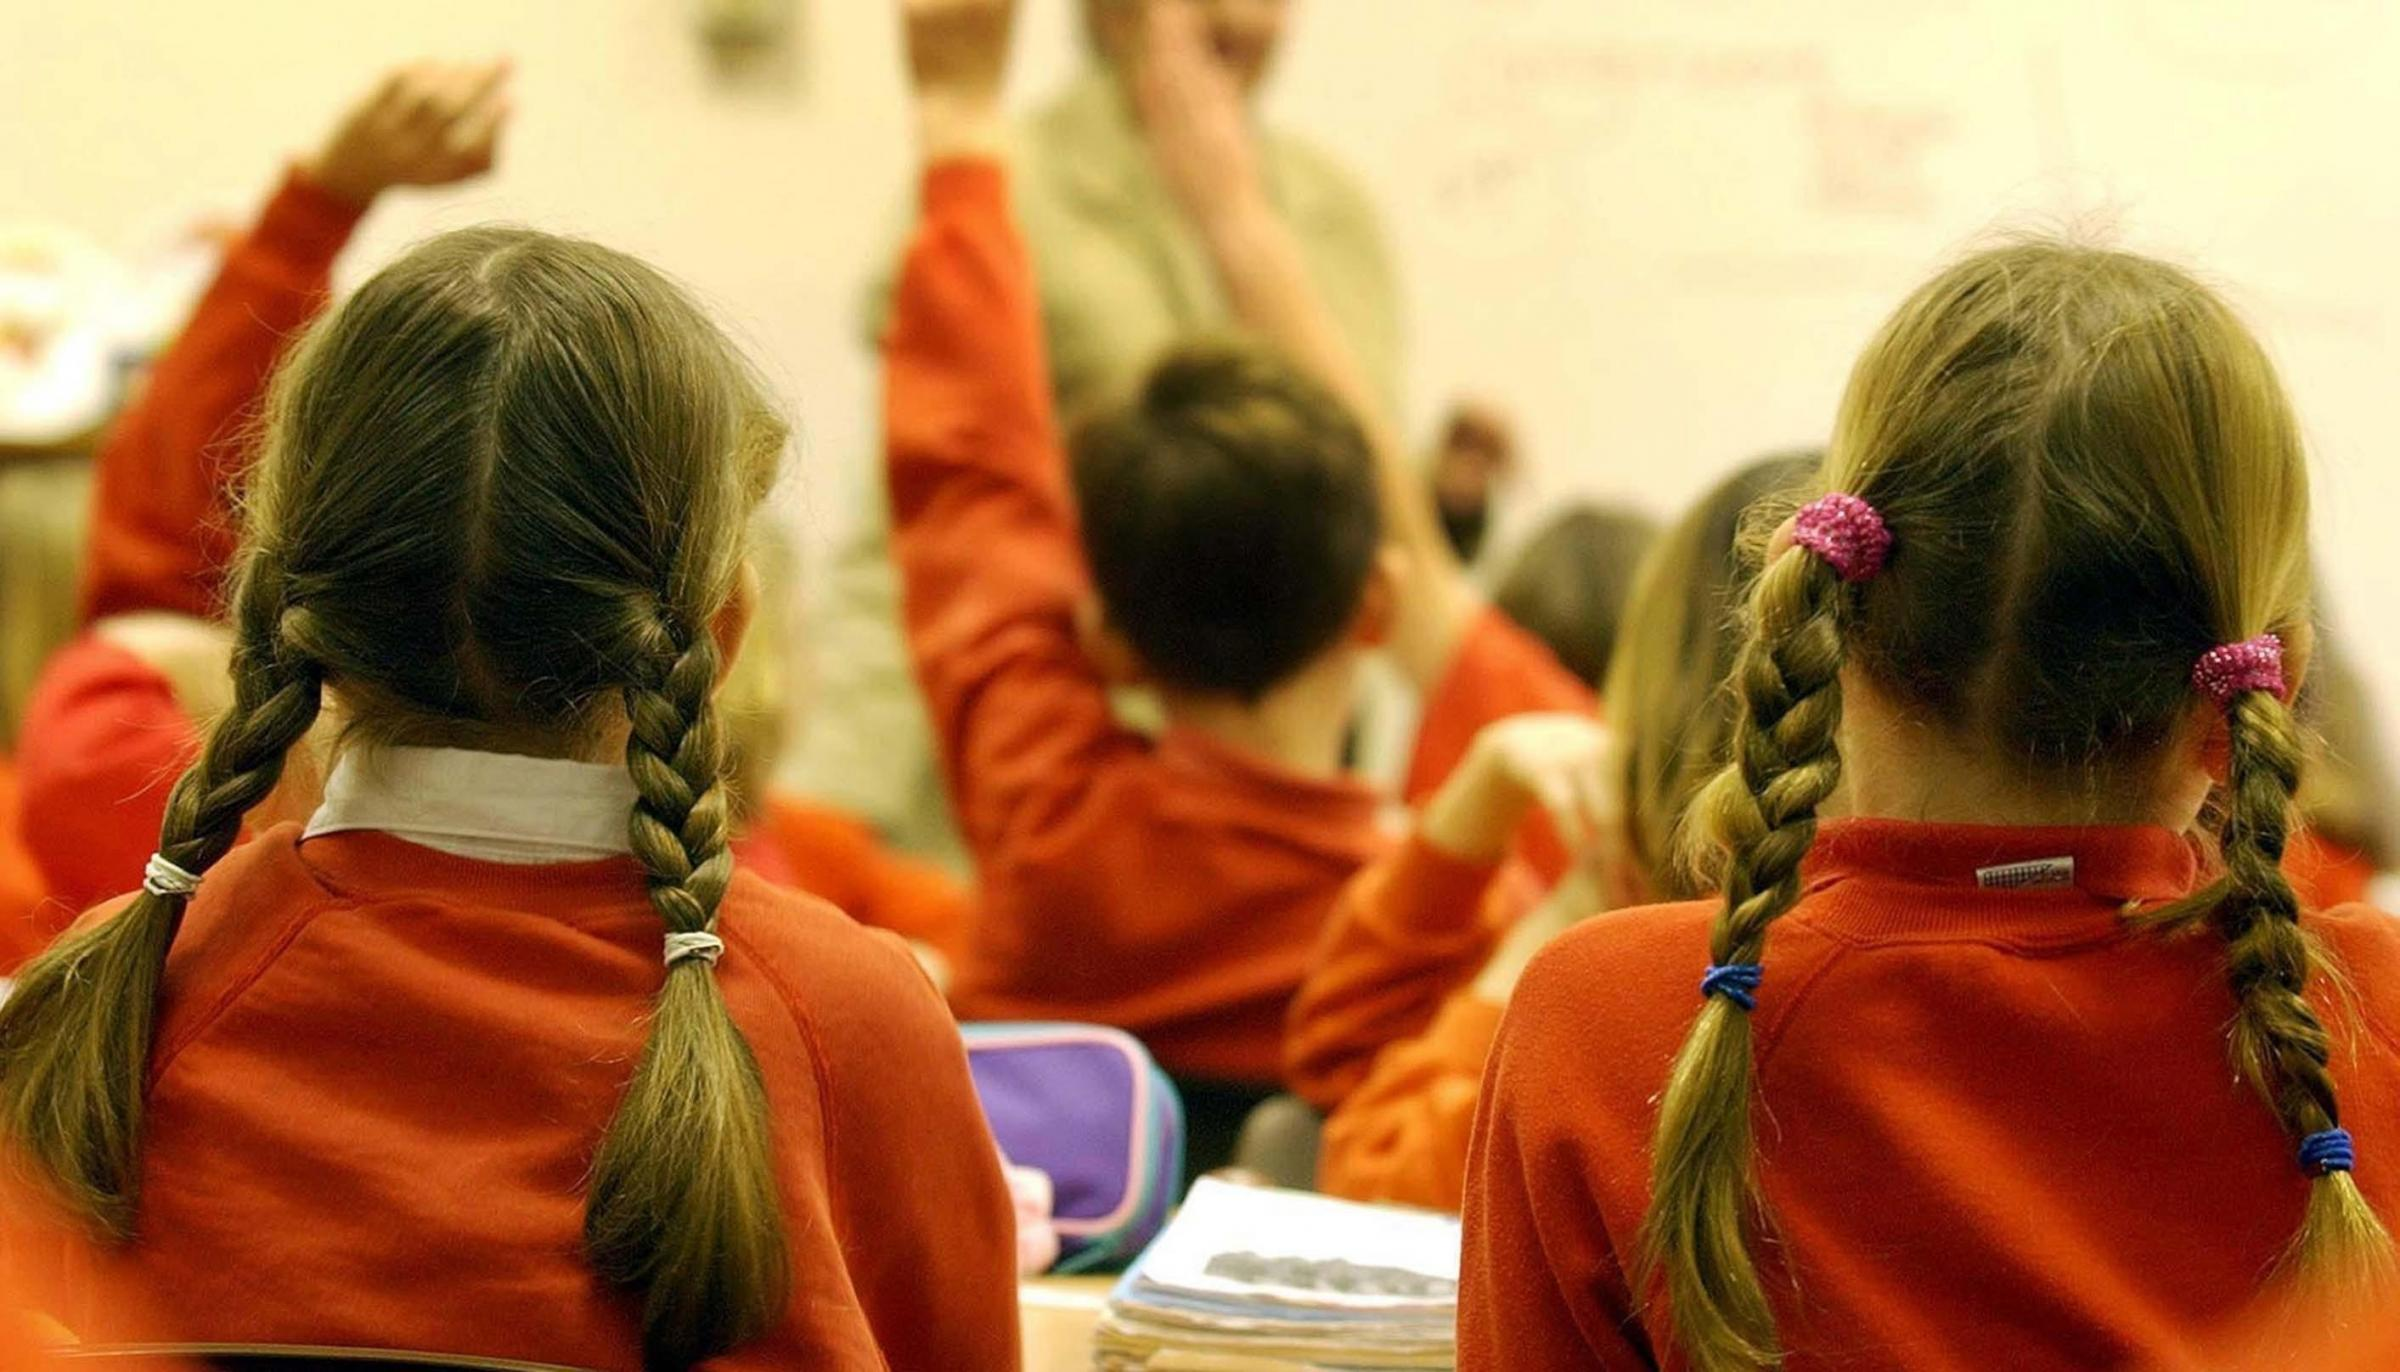 'Vast majority' of teachers anxious about returning to work